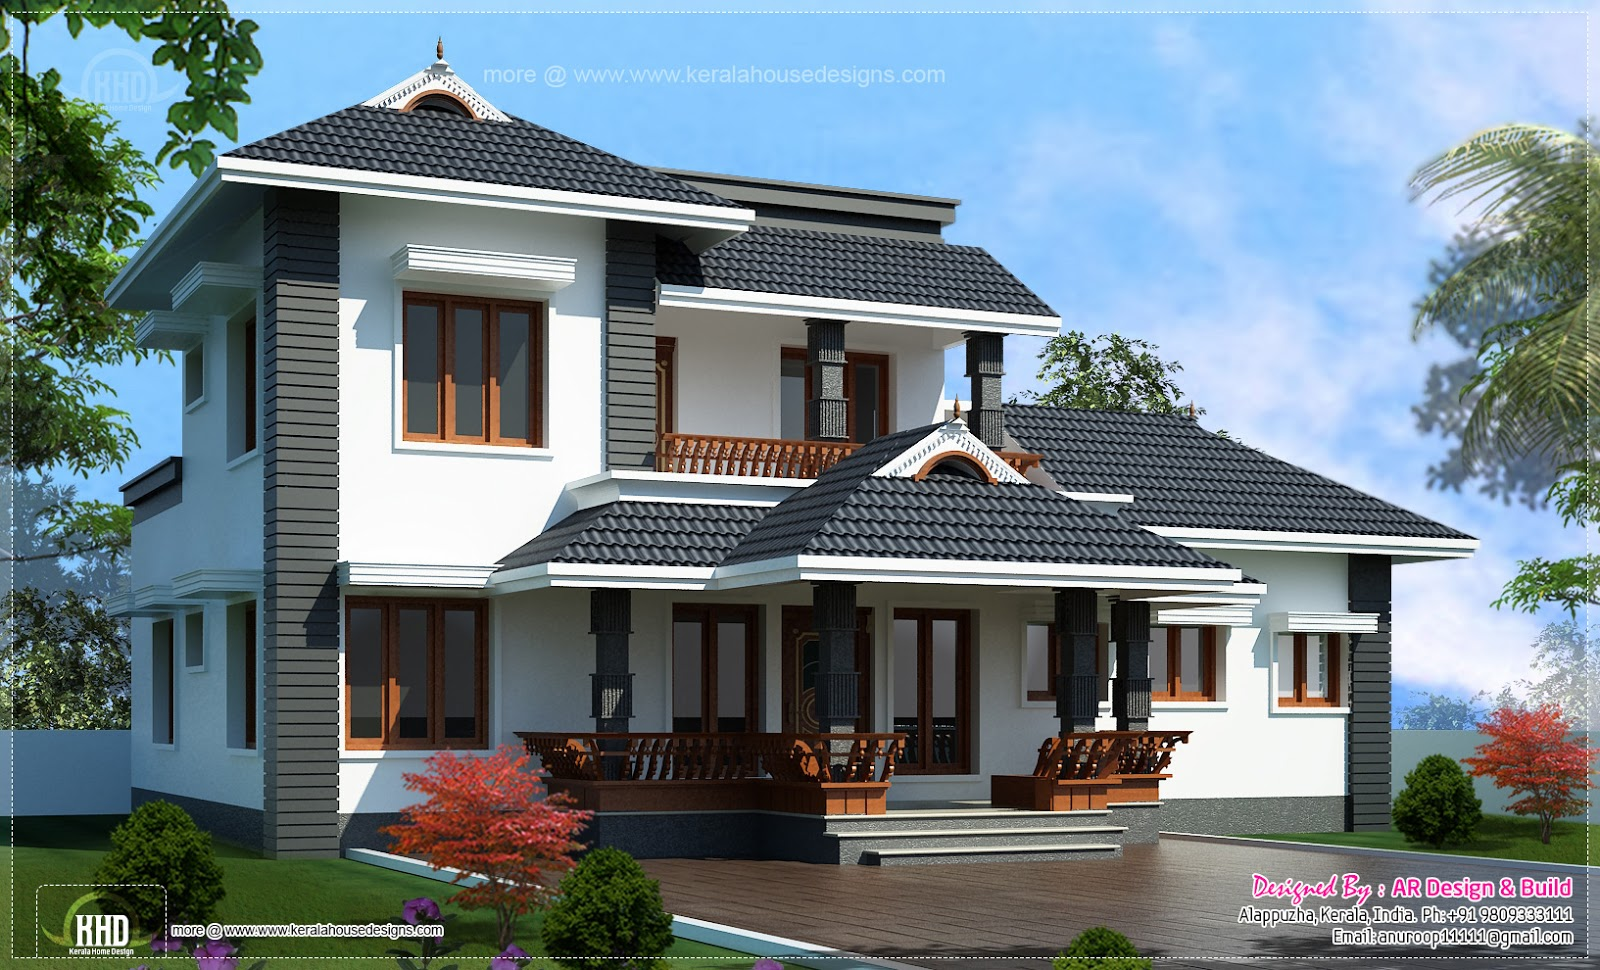 2000 4 Bedroom Sloping Roof Residence Kerala Home Design And Floor Plans: home design